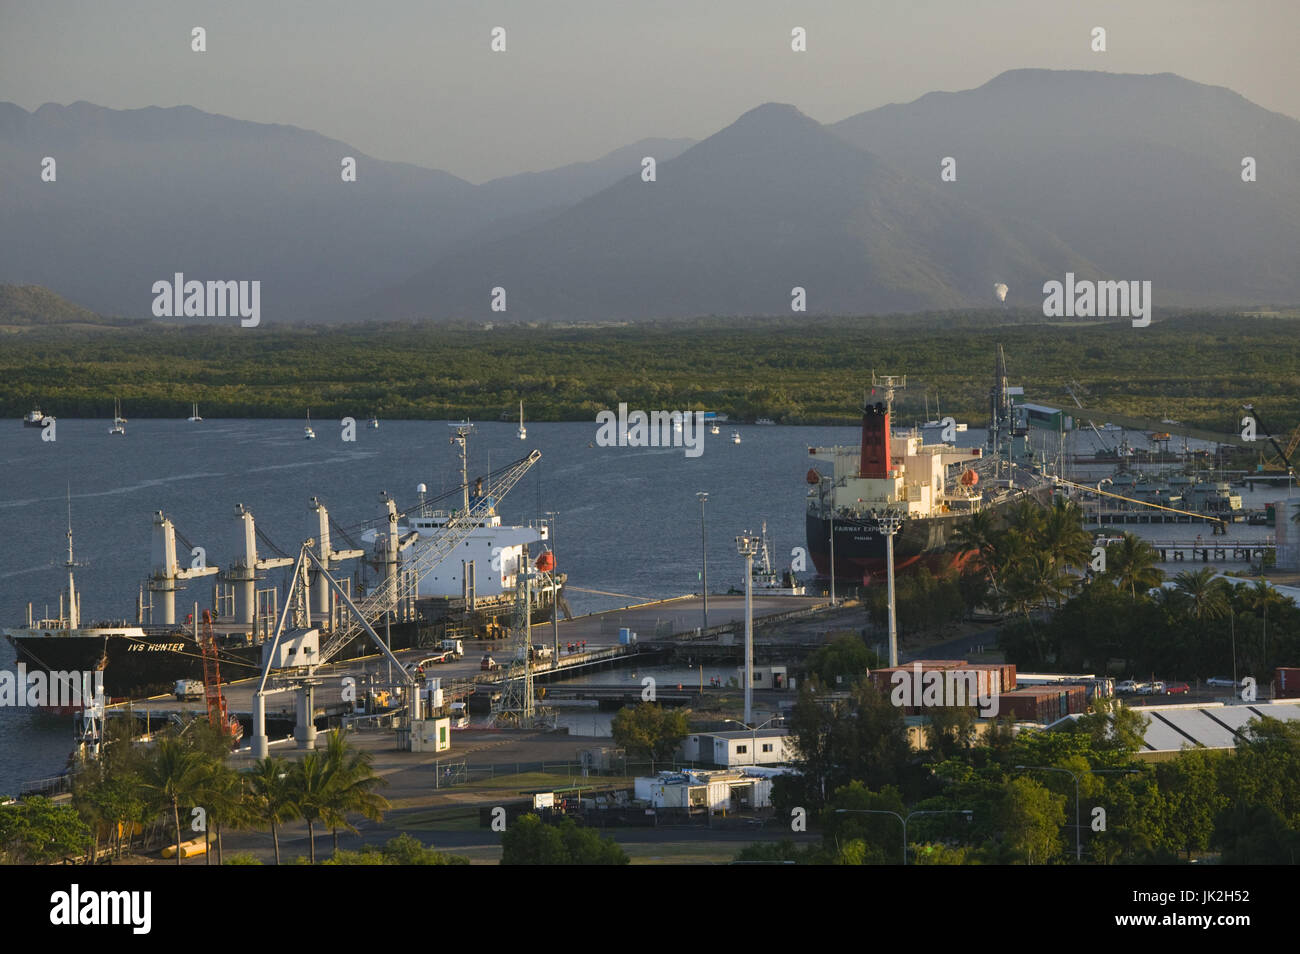 Australia, Queensland, North Coast, Cairns, Aerial View of the Port of Cairns, Stock Photo